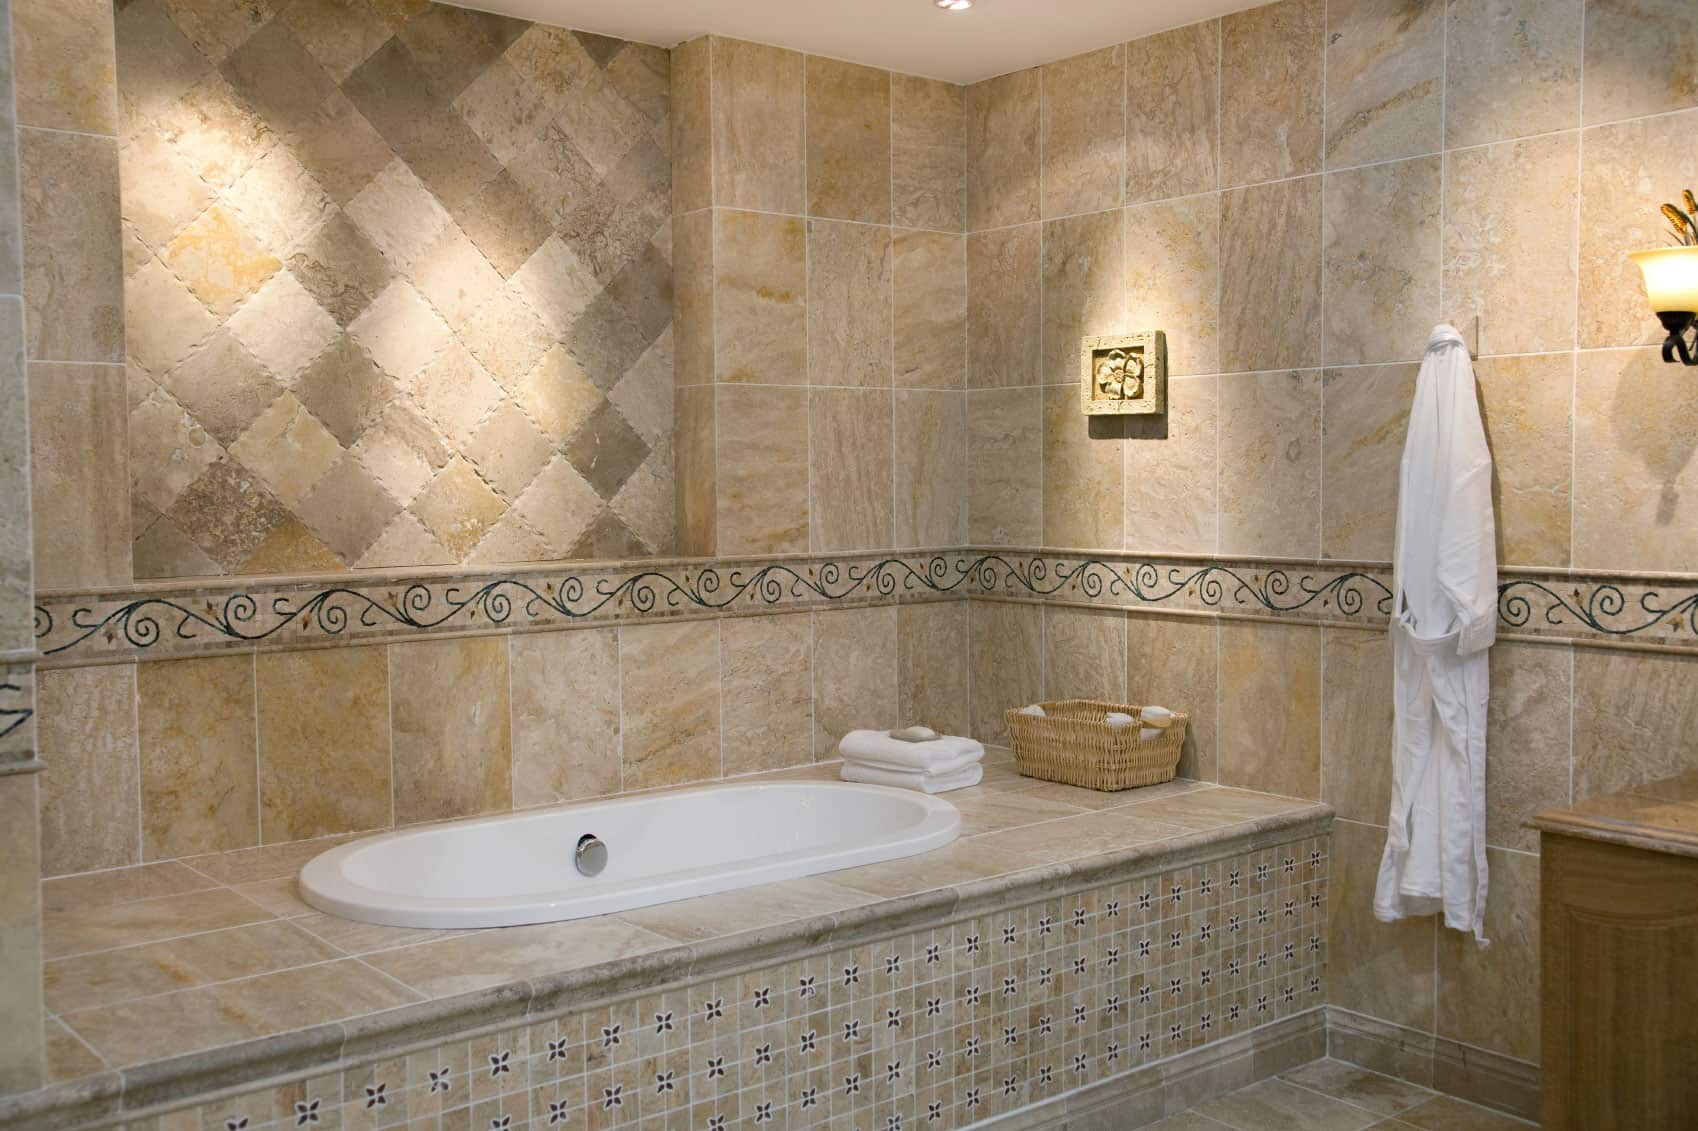 Toscano tile marble tile and marble services montgomery county bathroom tile toscano tile and marble tyukafo